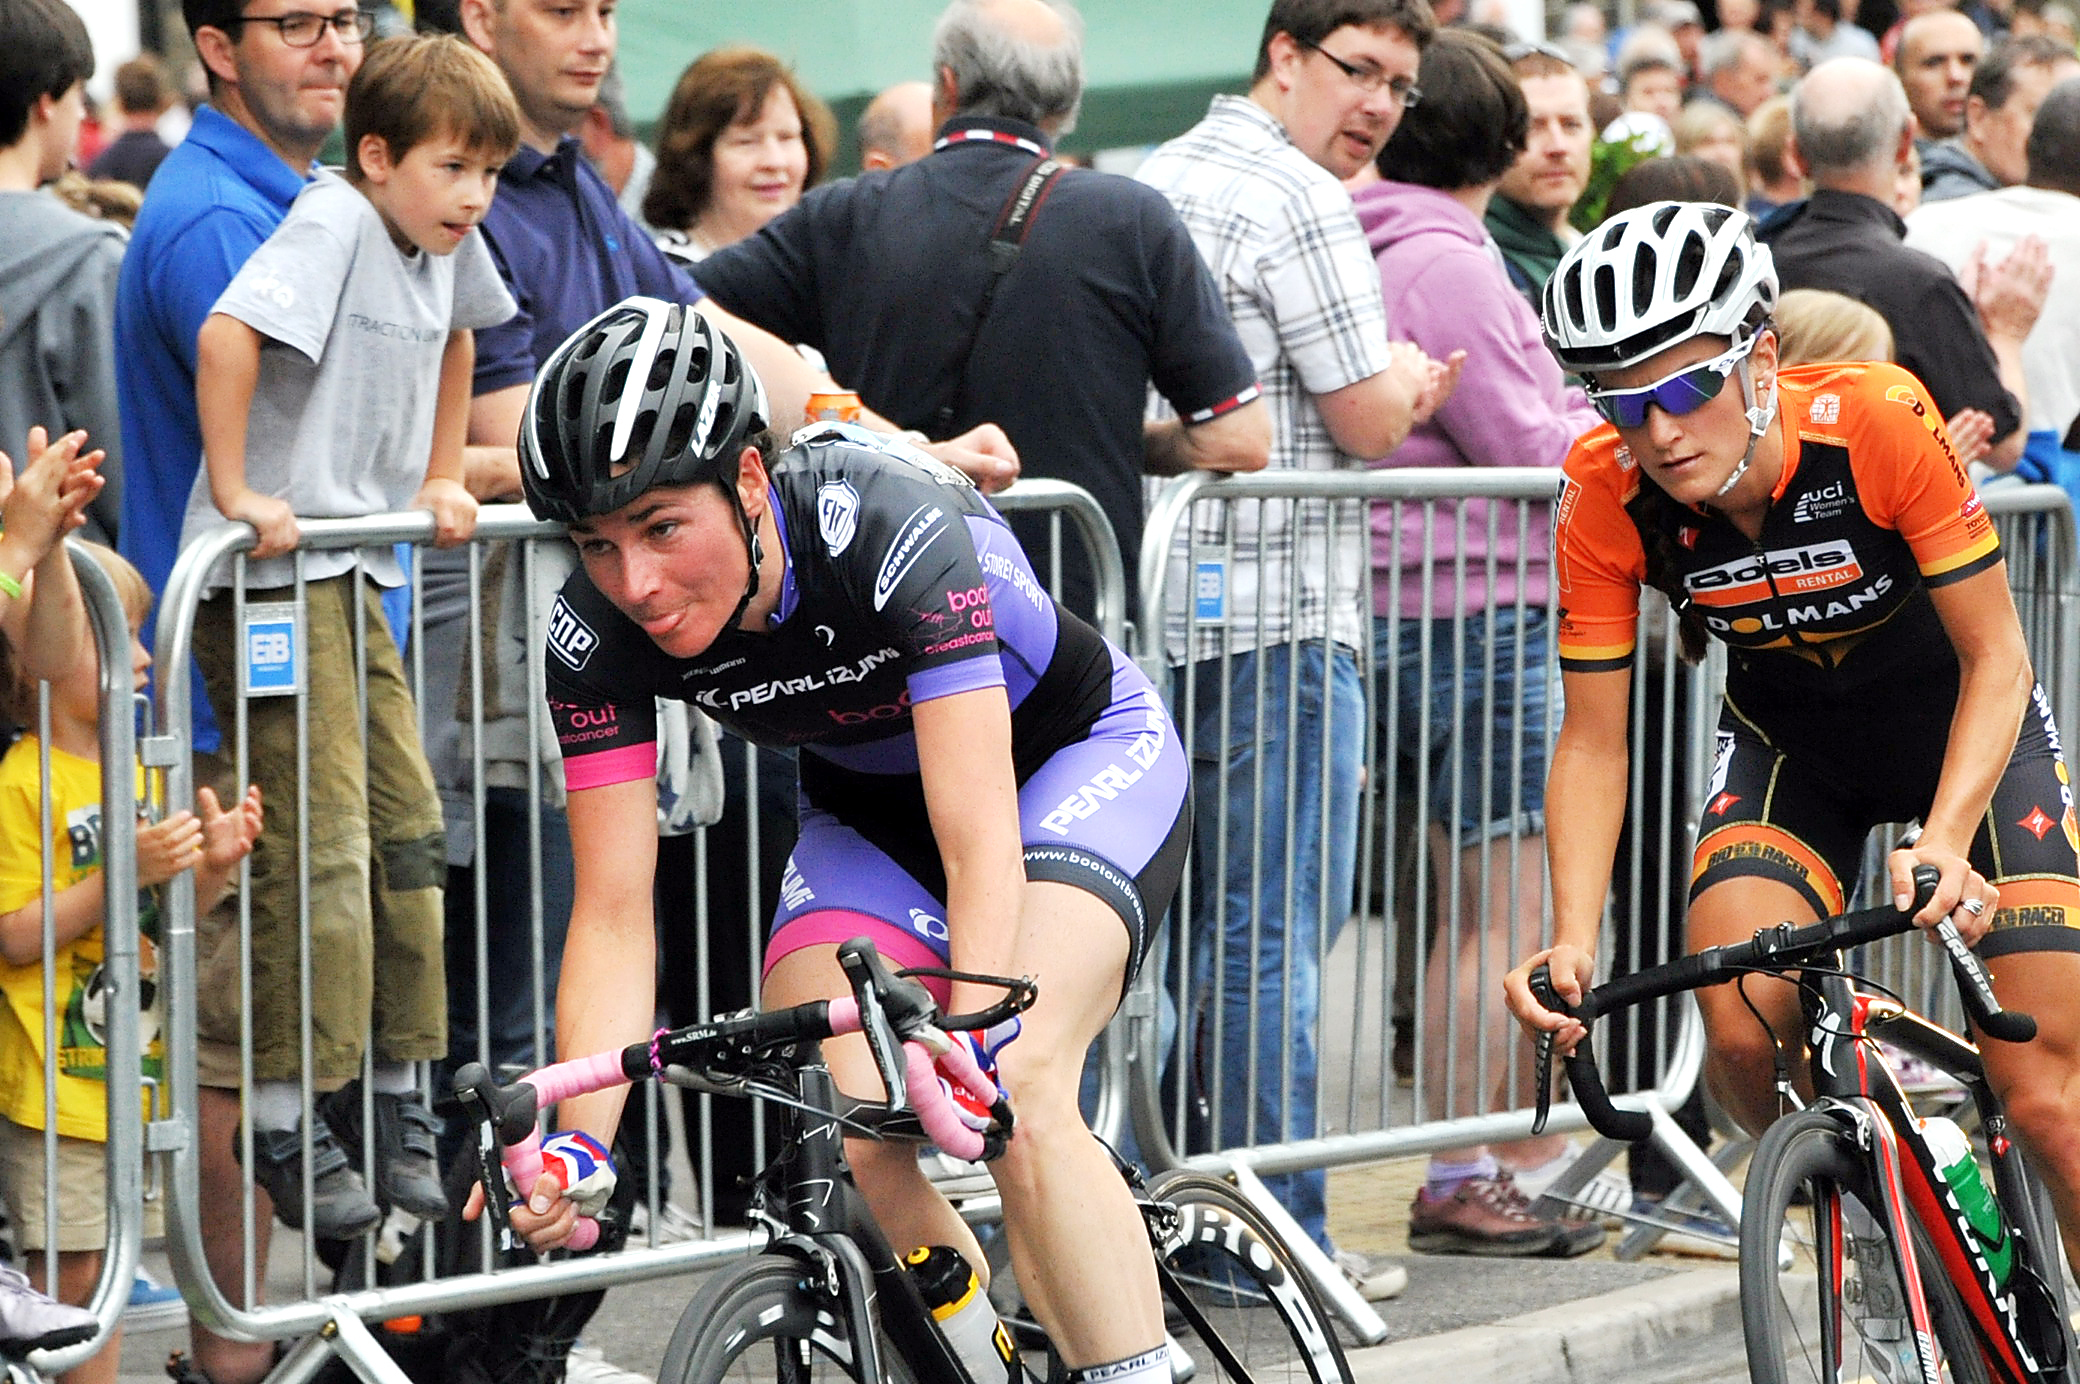 VIDEO: Otley cycling fans thrilled by Lizzie Armitstead race victory ahead of Grand Depart